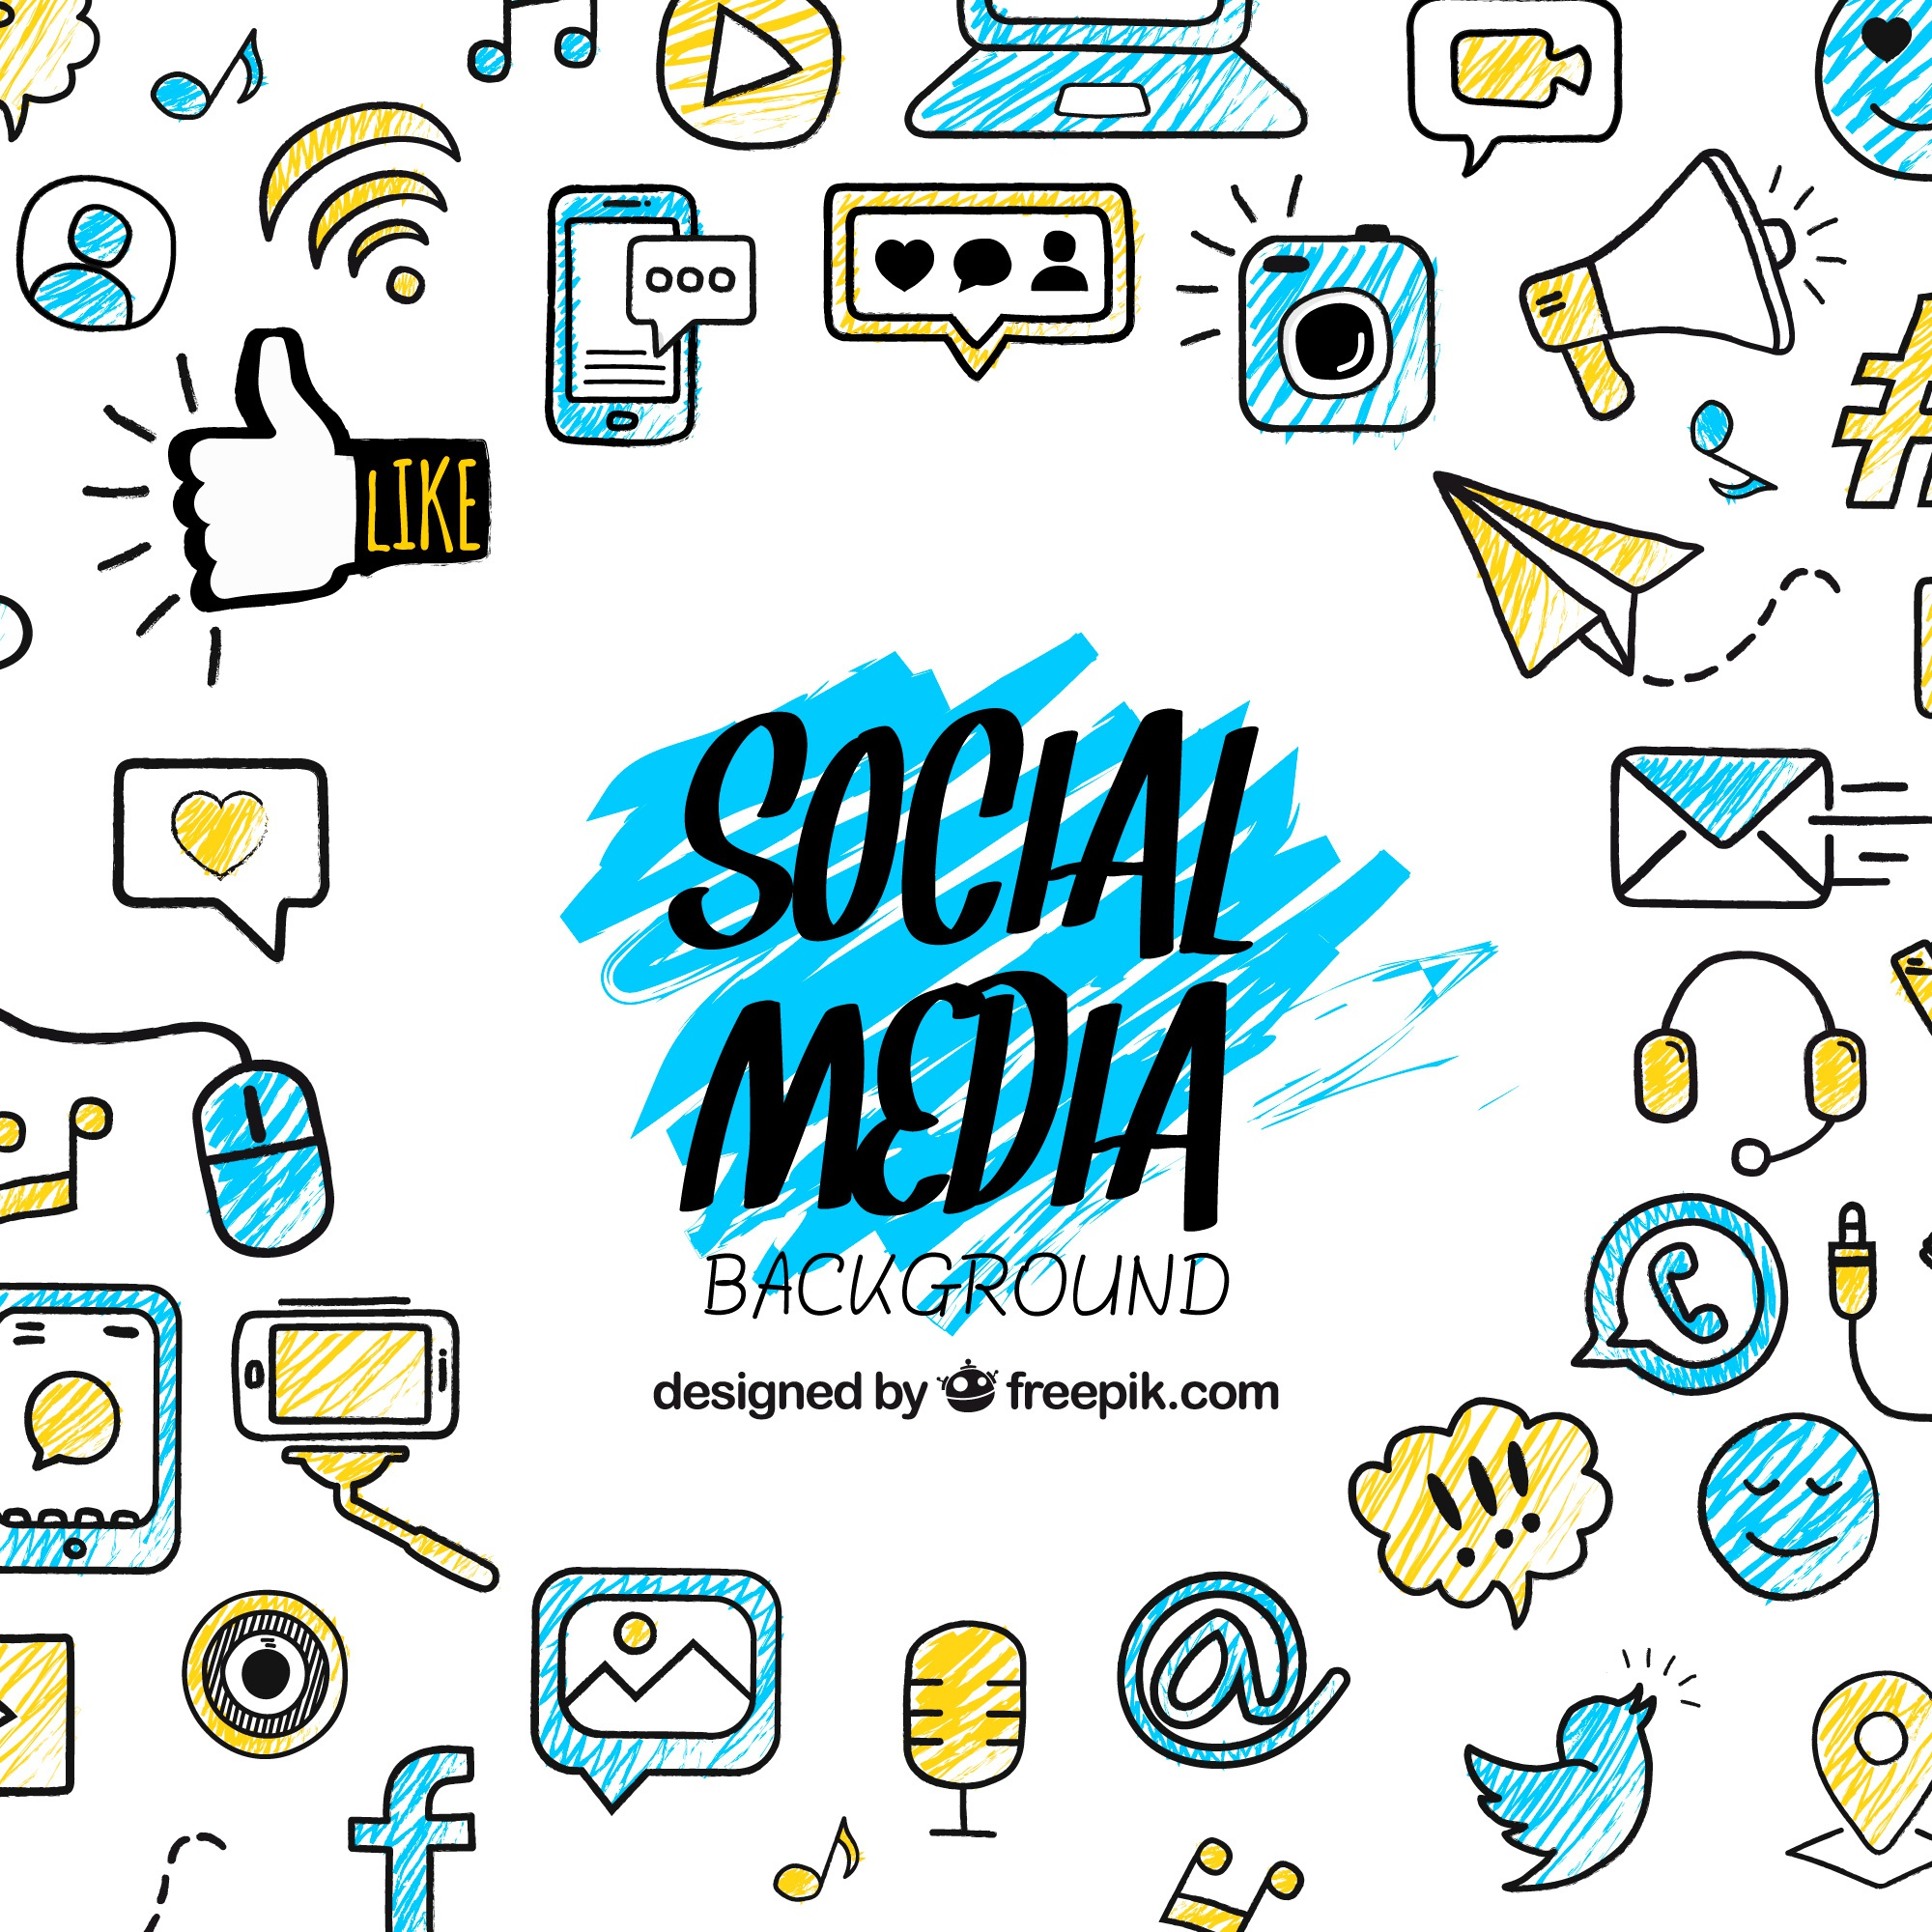 Social media background with hand drawn elements